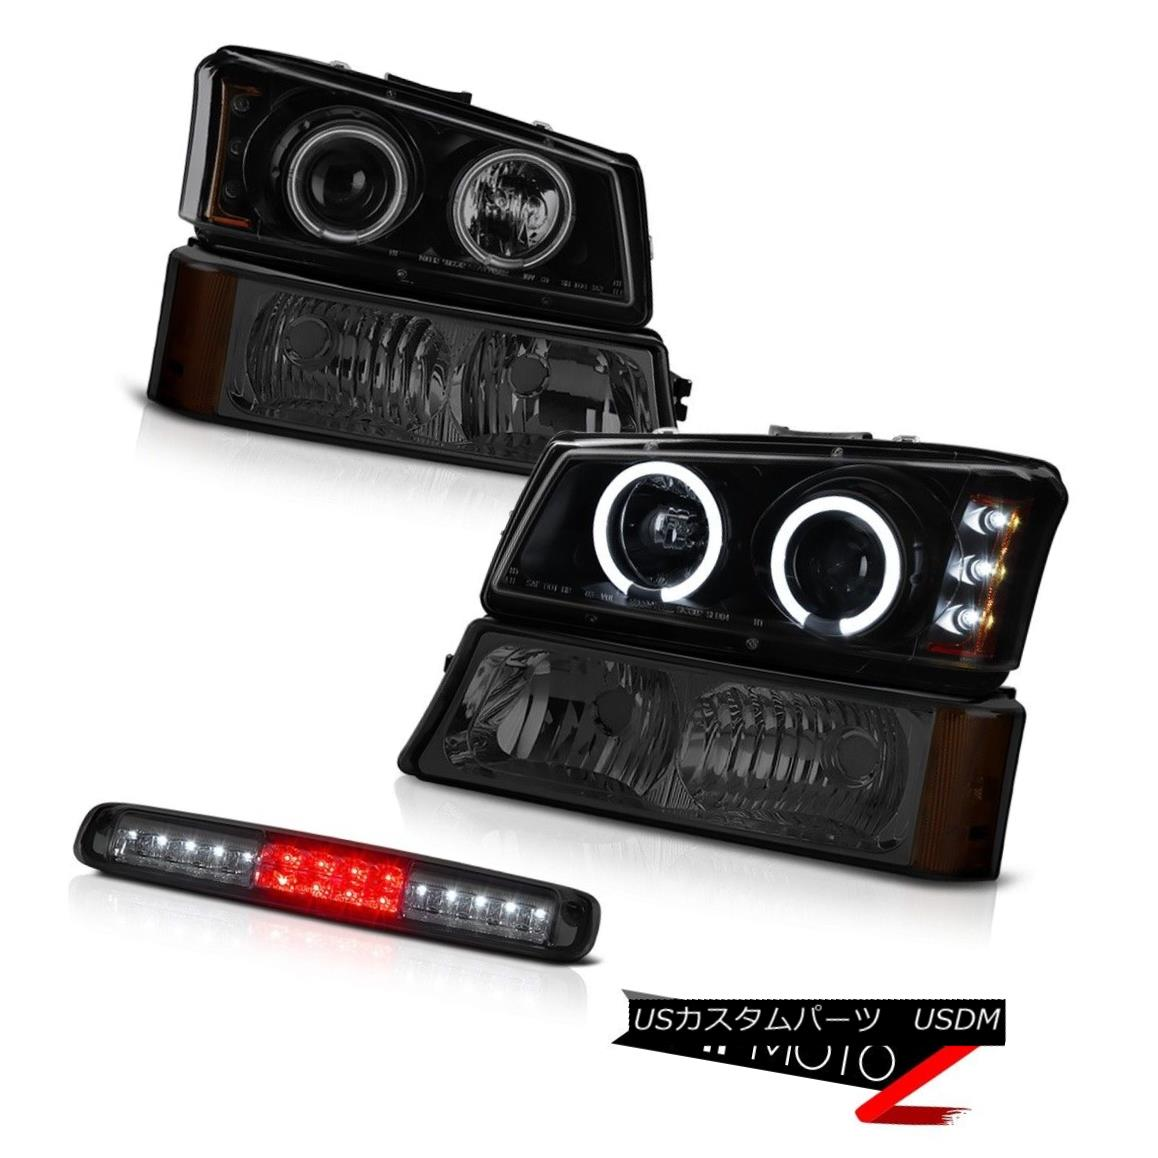 ヘッドライト 03-06 Chevy Silverado 1500 Third Brake Light Bumper Darkest Smoke Headlamps LED 03-06 Chevy Silverado 1500 Thirdブレーキライトバンパー暗い煙ヘッドランプLED